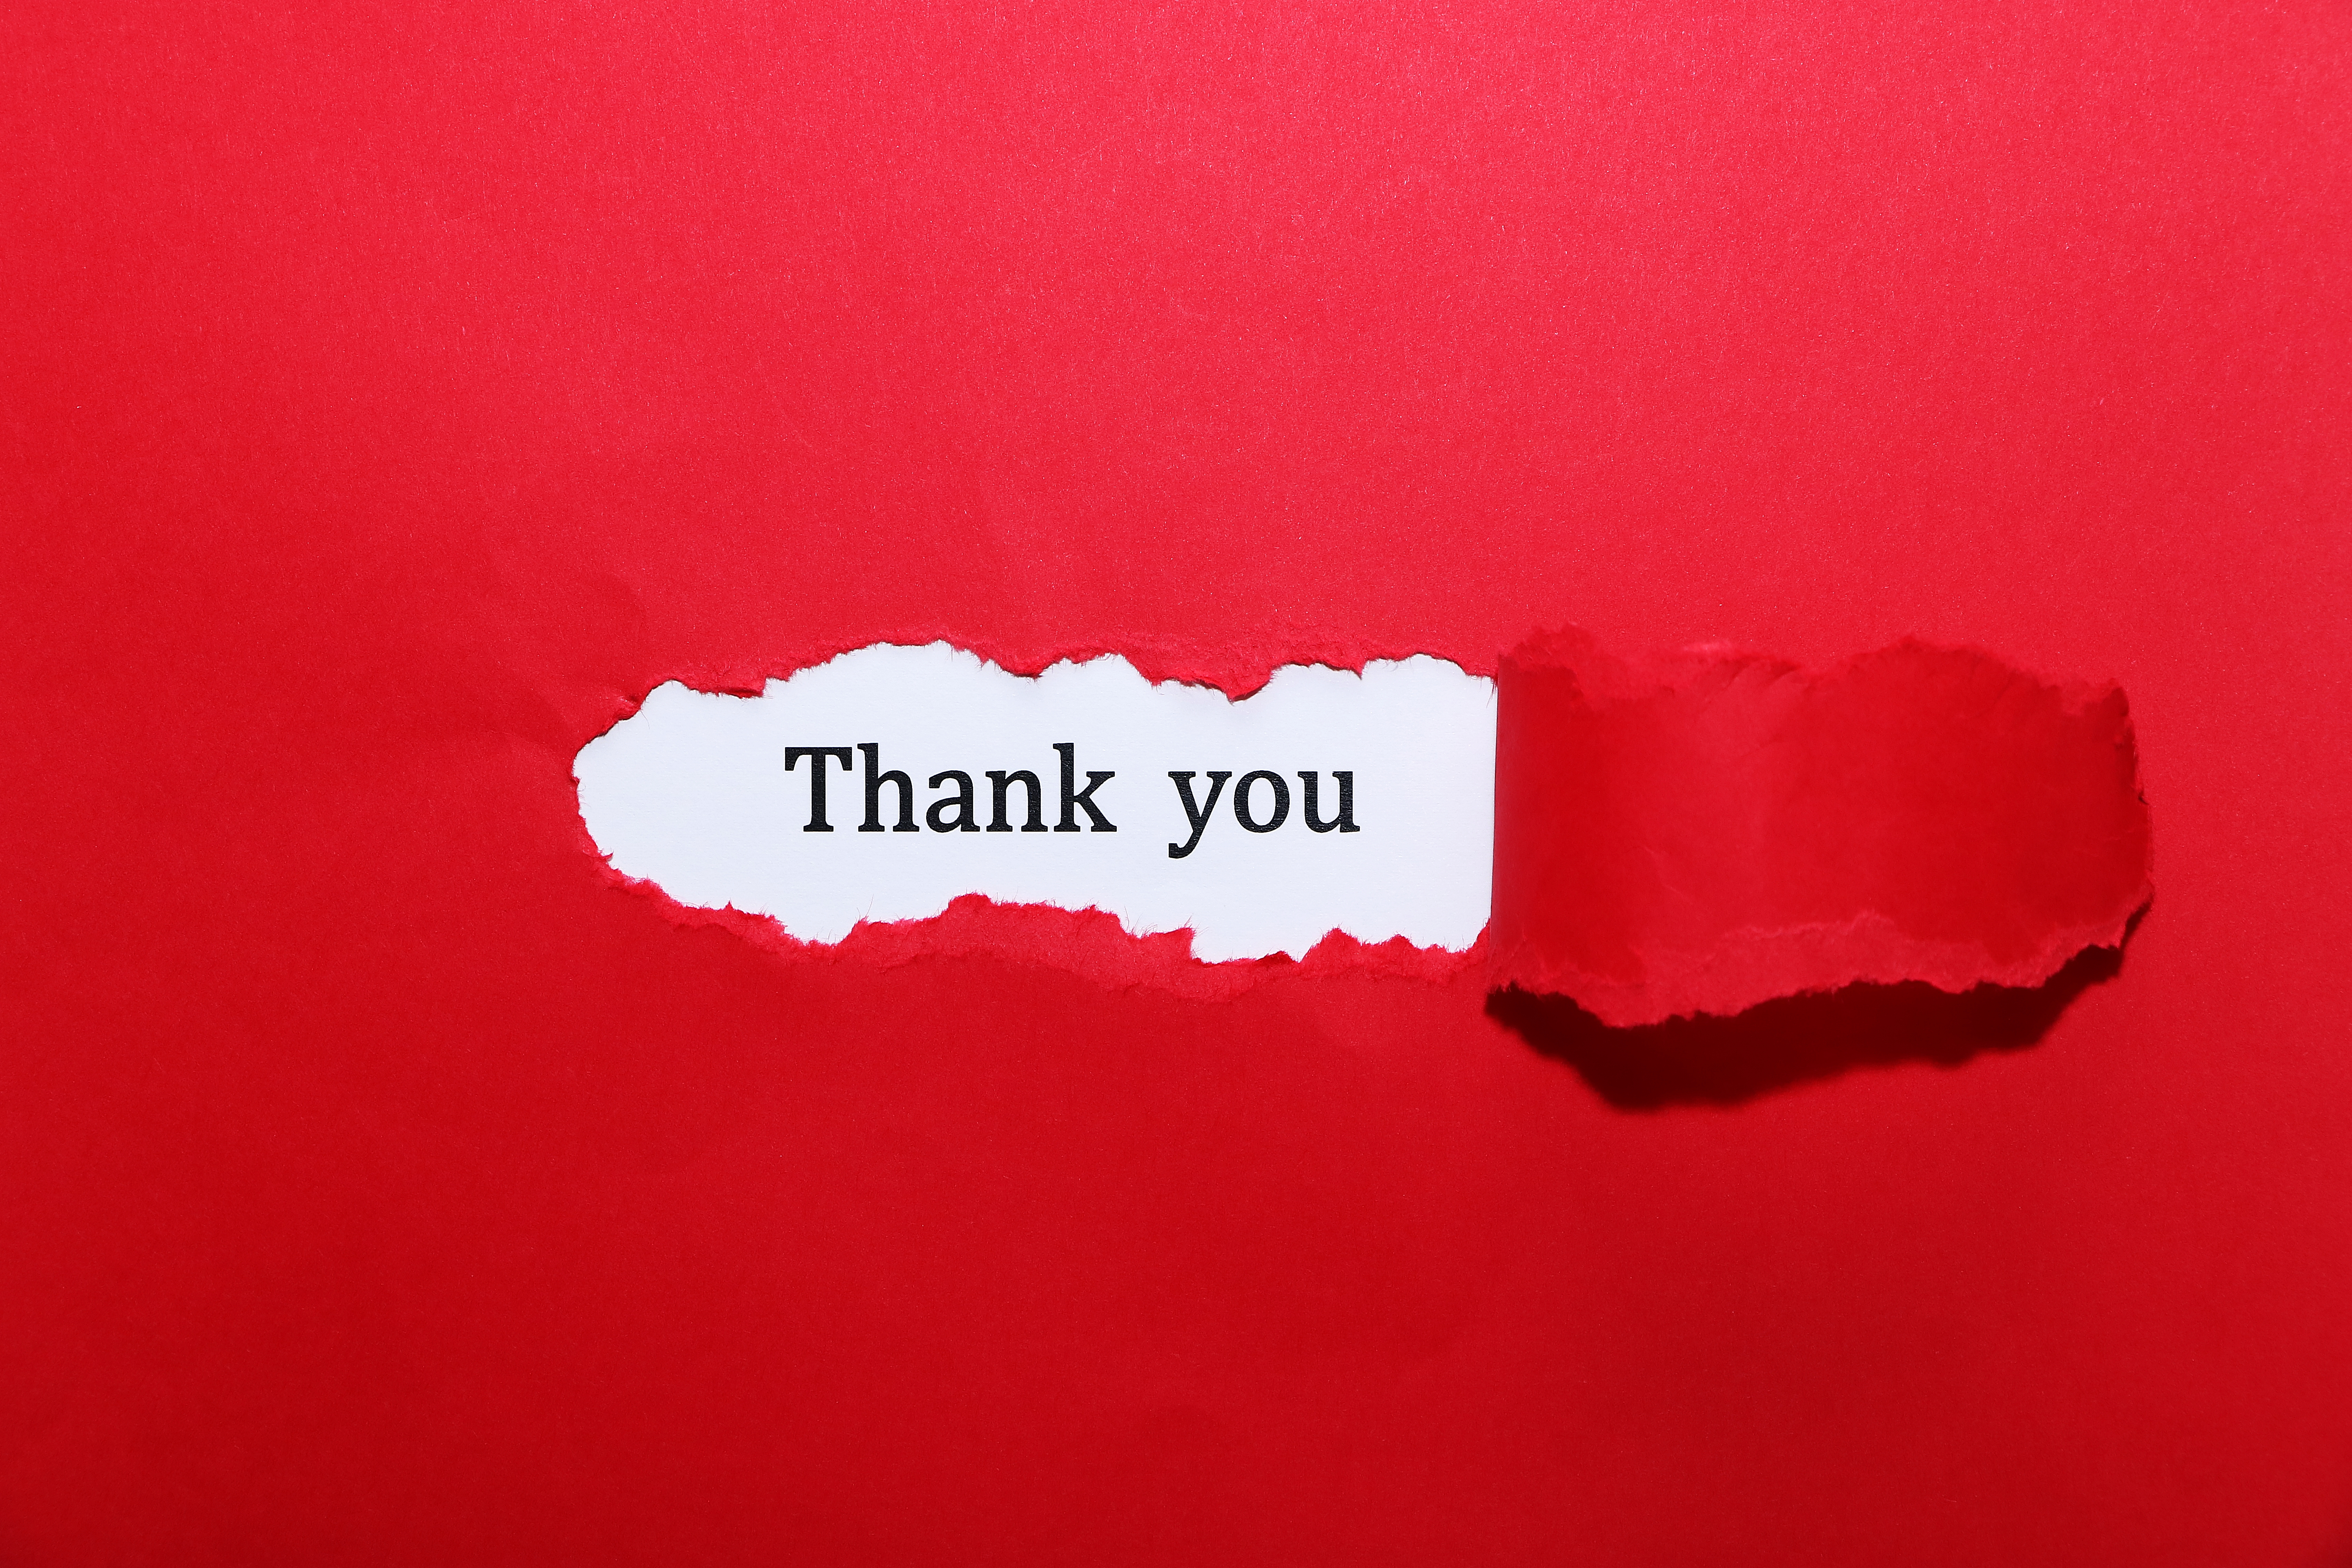 Thank you from Karen Grose, author of The Dime Box